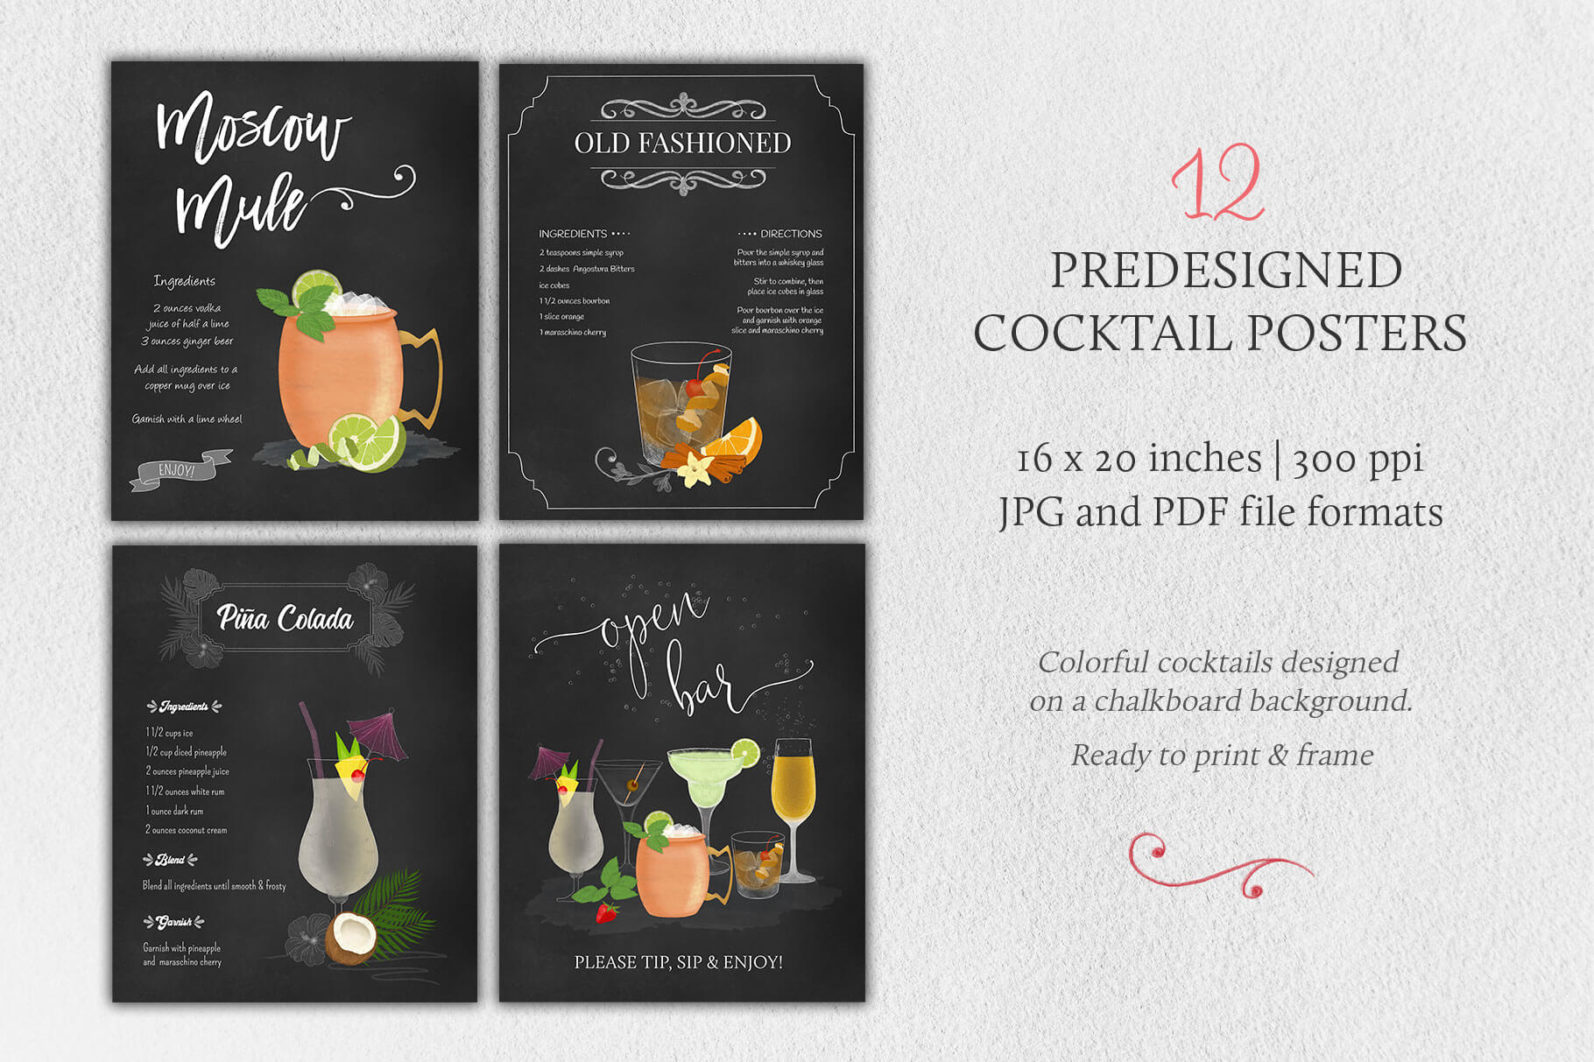 Cocktail Illustrations & Posters - page posters 3 -